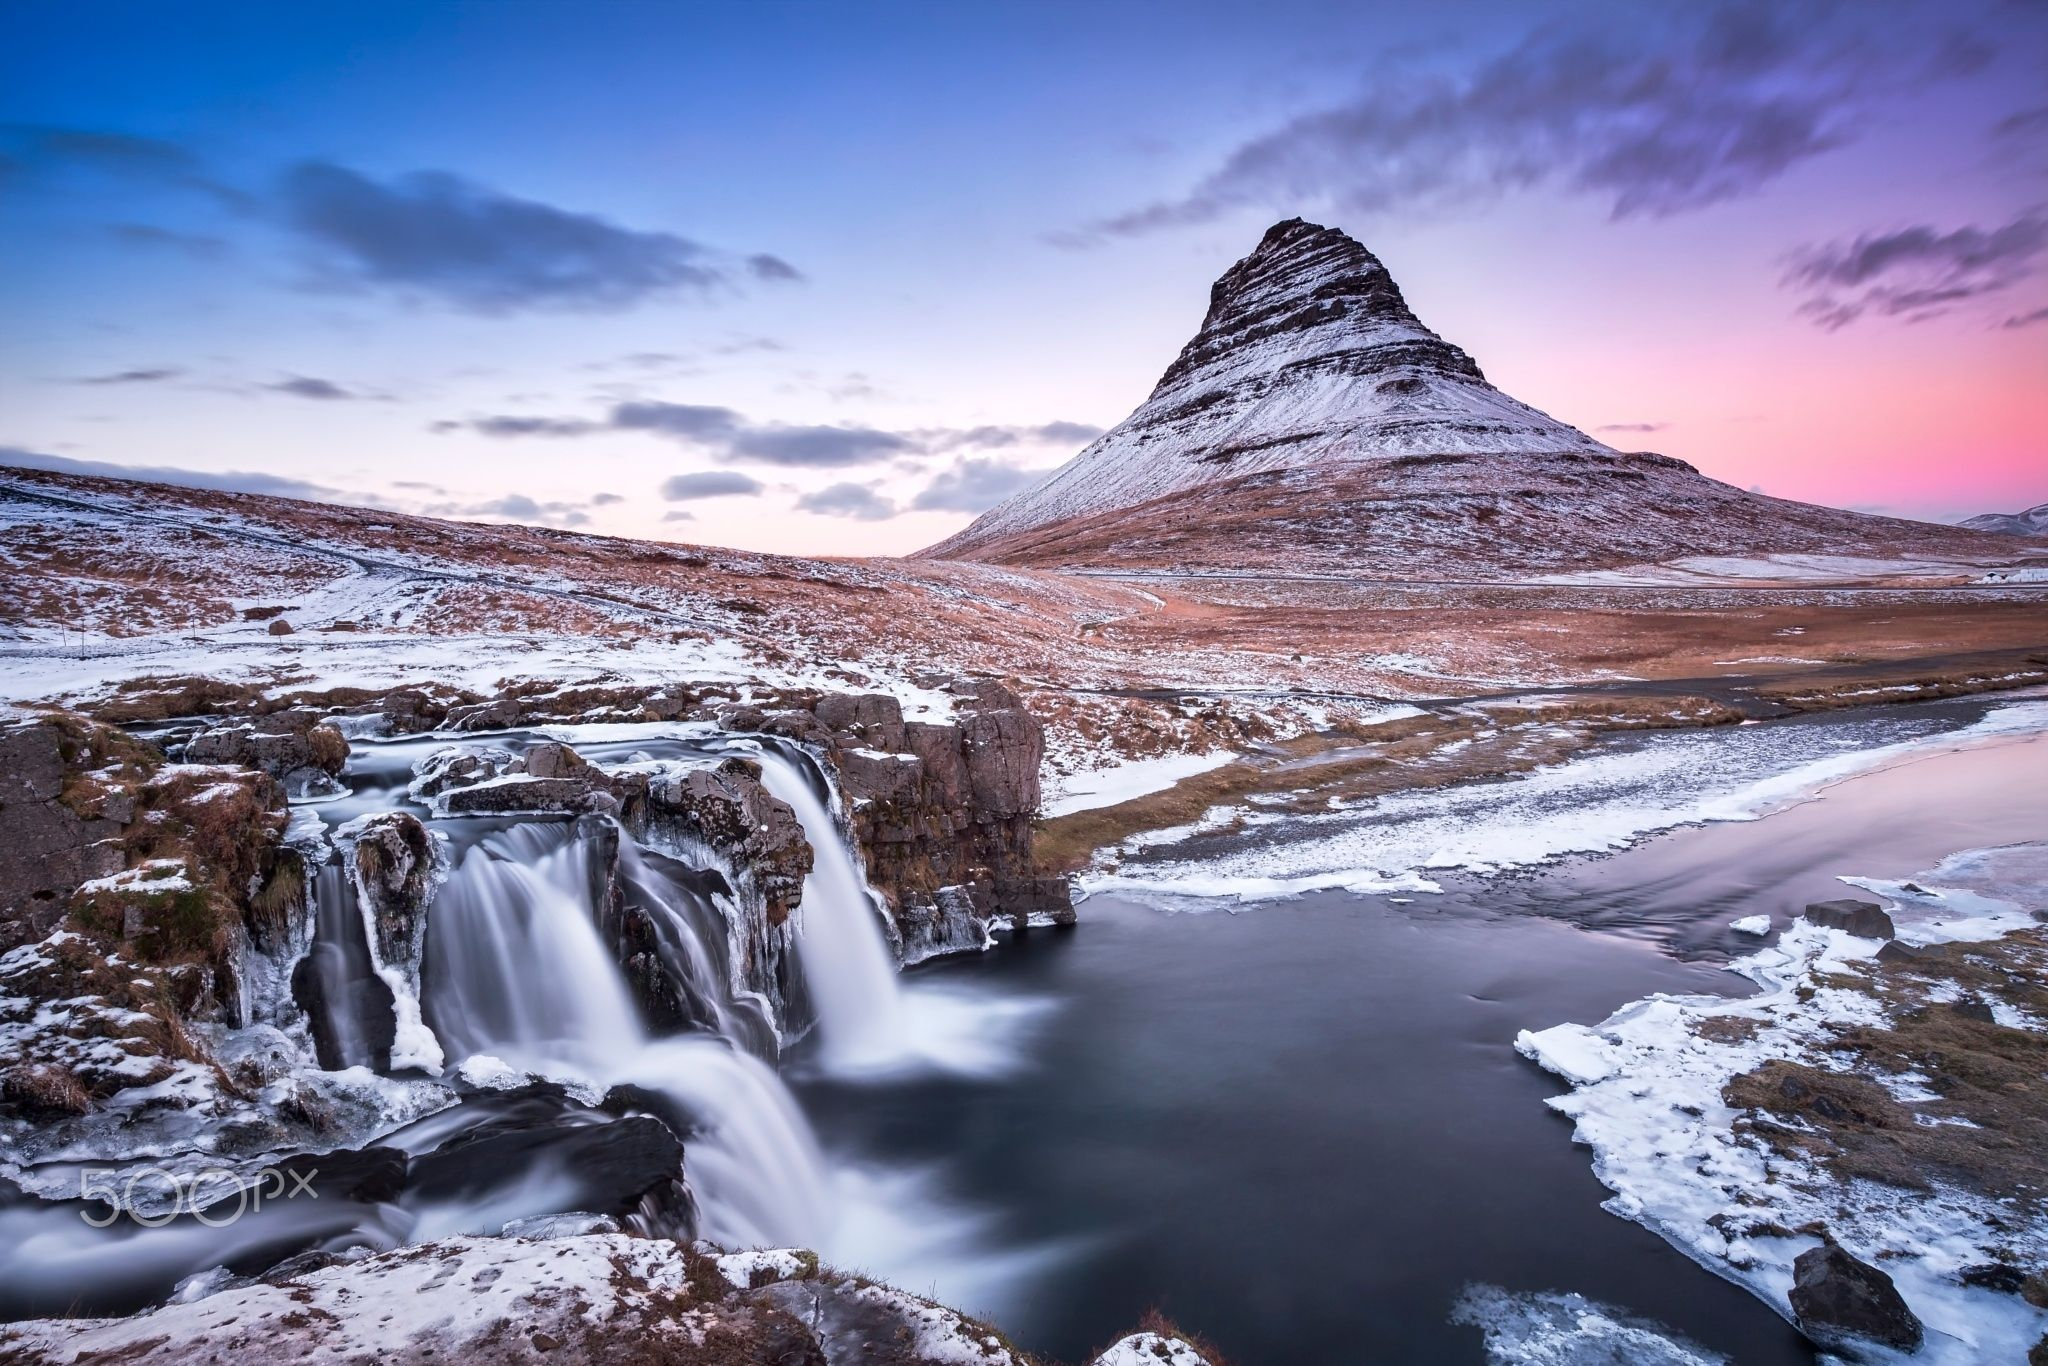 Feeling The Cold - This was captured just after the sunset set at kirkjafell in iceland